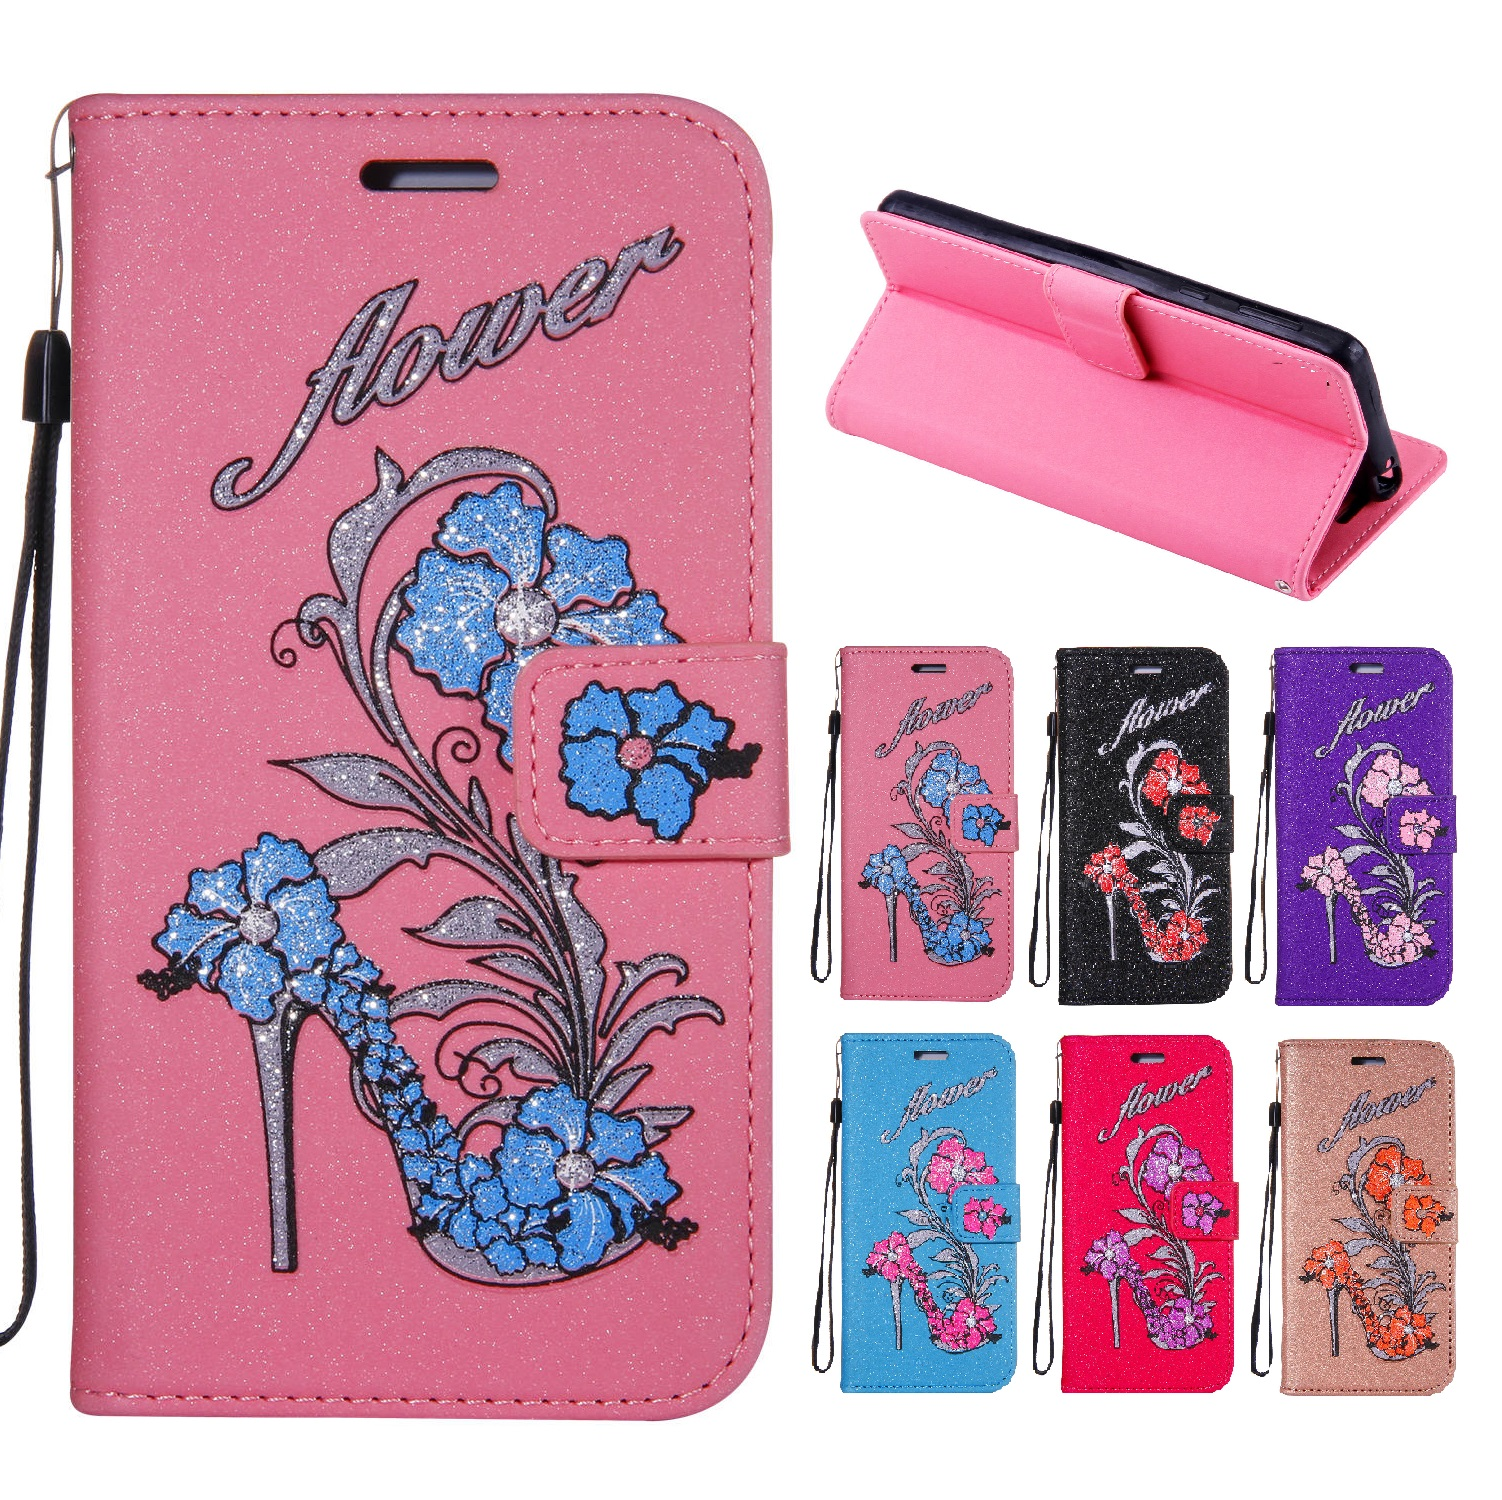 Case for Huawei NOVA 2 Plus BAC-L21 BAC-L01 Case Flash powder Wallet Phone Leather Cover for Huawei NOVA2 Plus Barca-L21 BAC L21